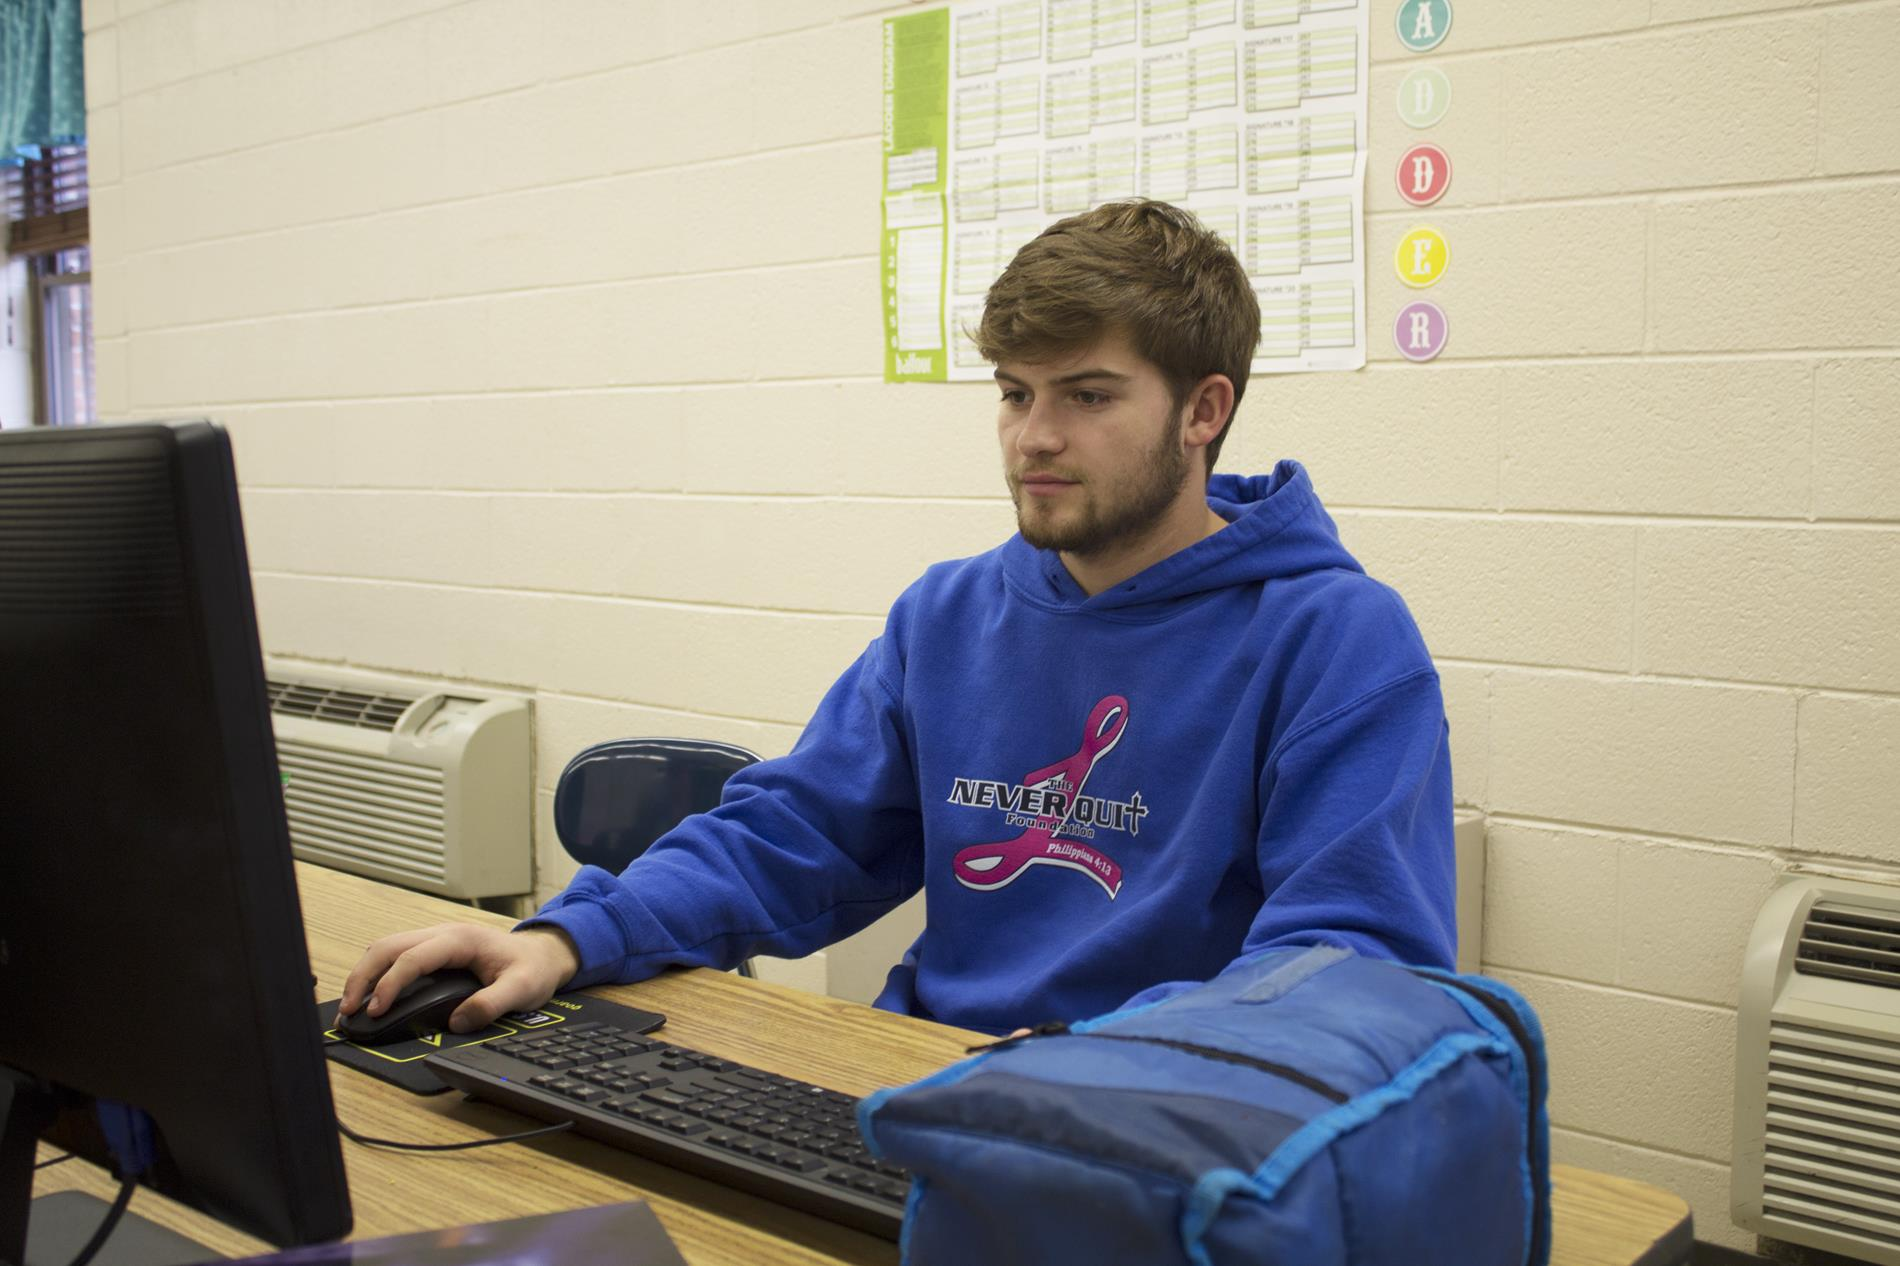 Student works on a computer